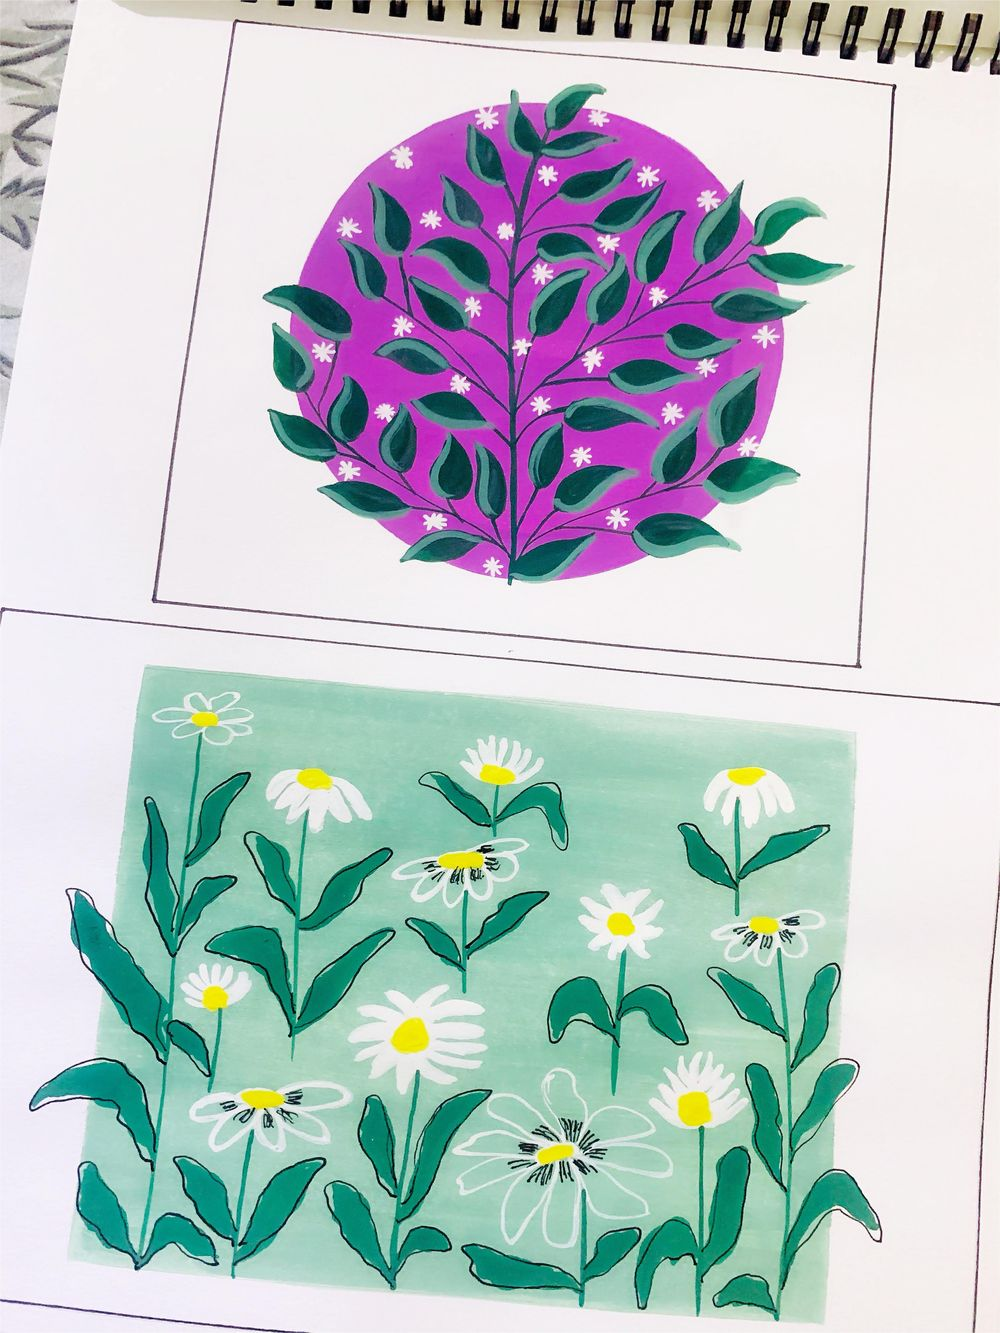 Pattern Paintings - image 1 - student project